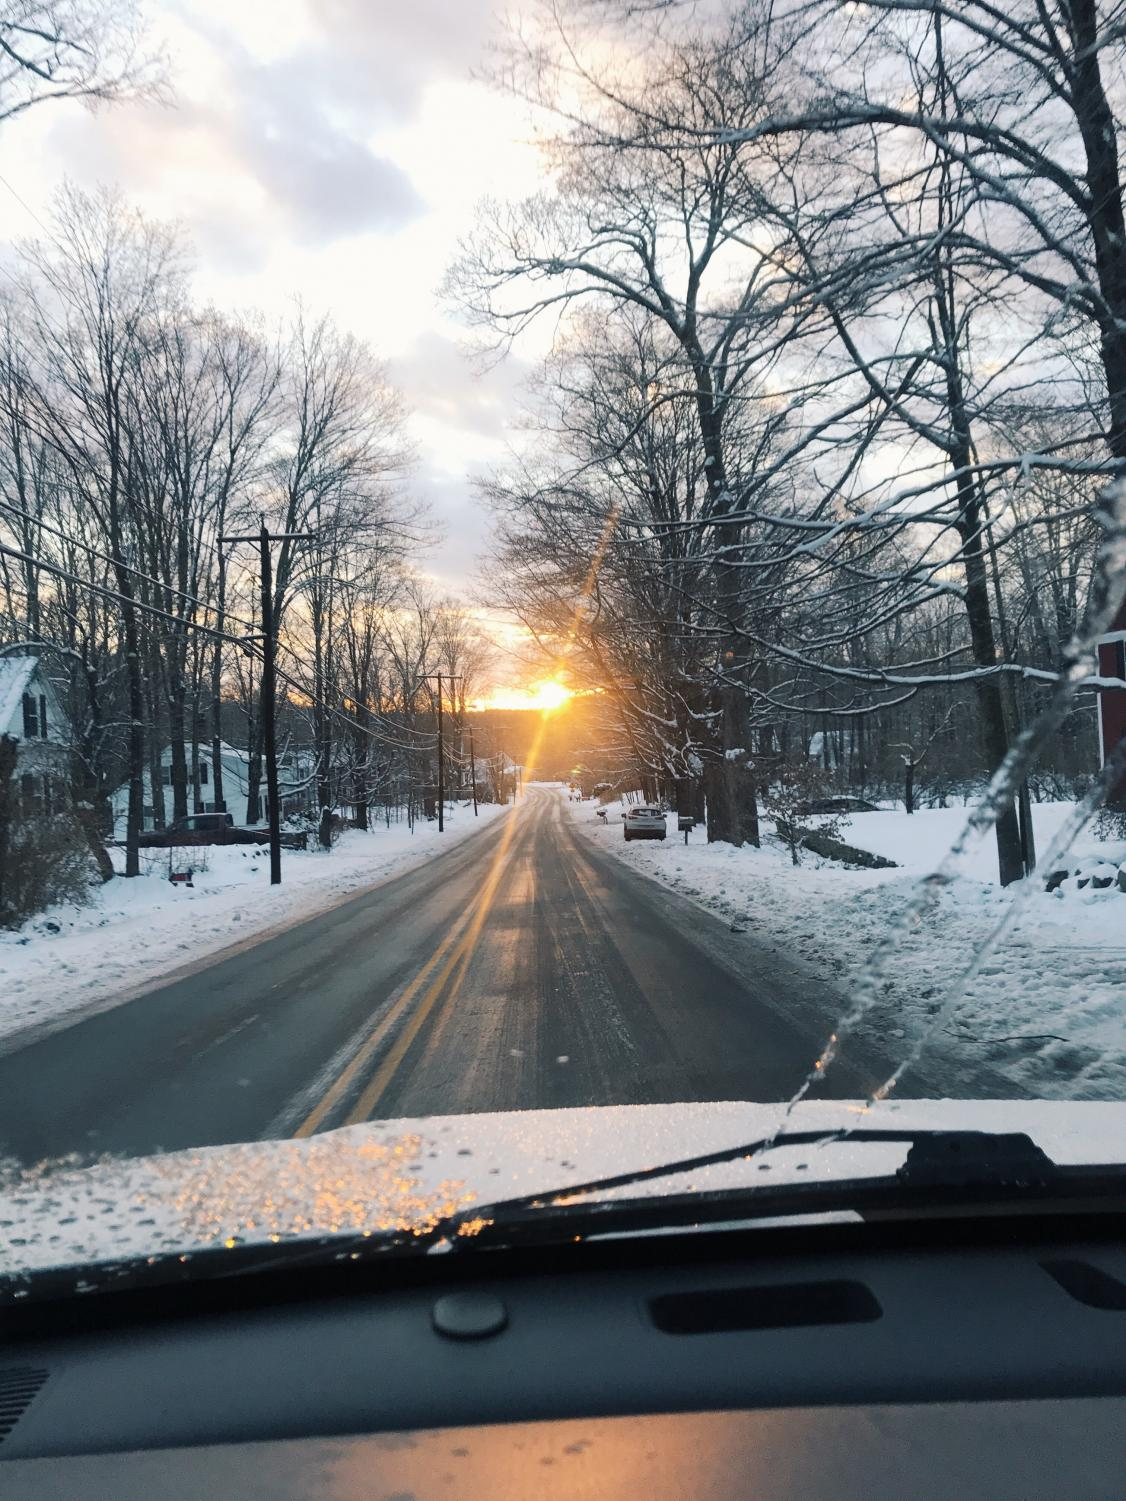 Although the fresh snow makes the streets look pretty, it has been causing dangerous road conditions for students at Hollis Brookline.